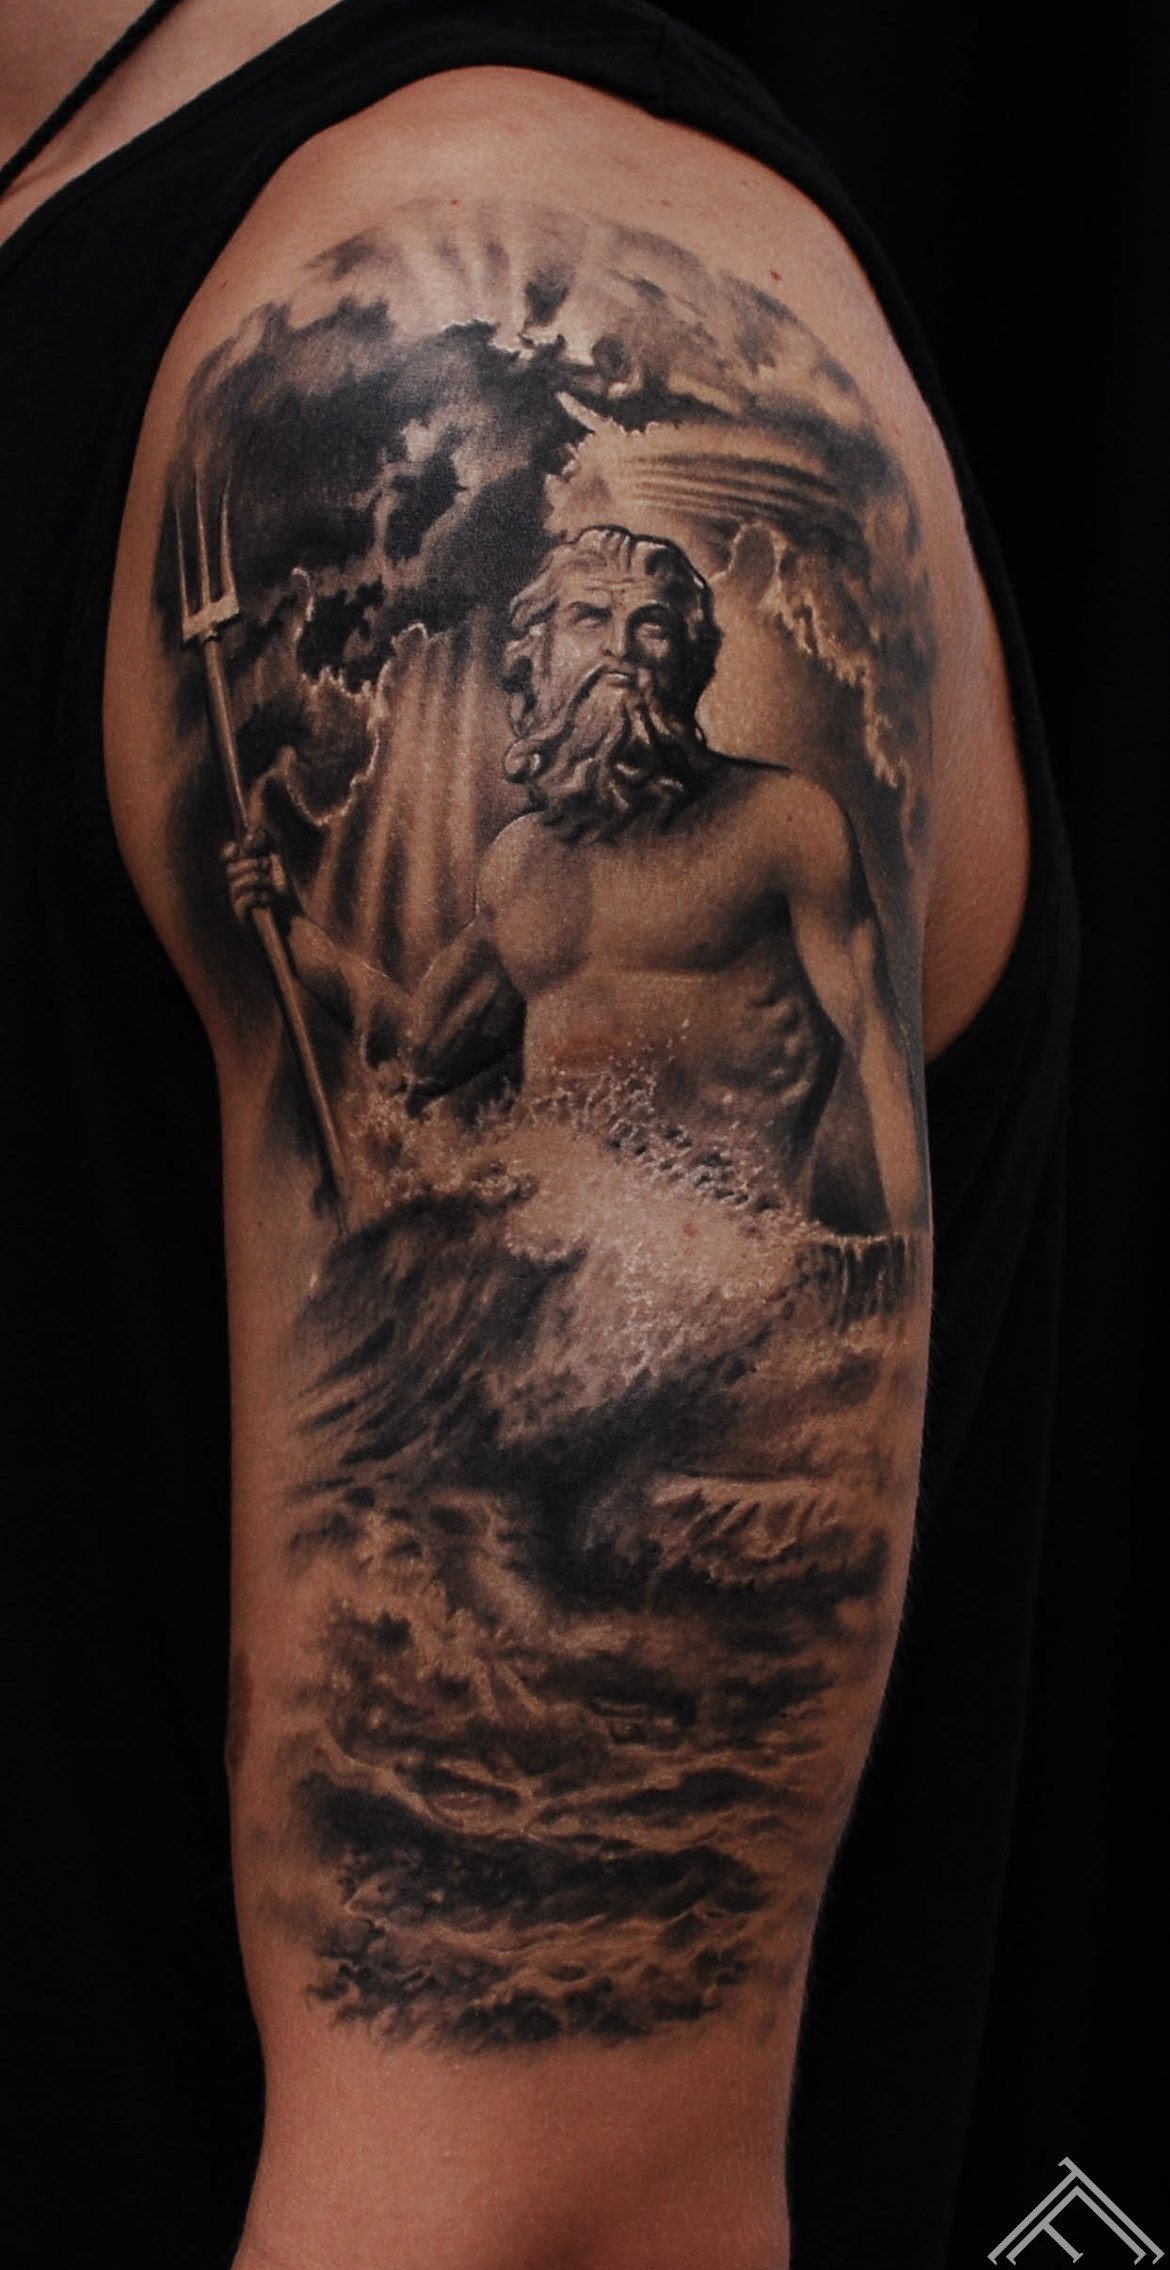 poseidon-mithology-God-of-the-Sea-tattoo-tattoofrequency-riga-marispavlo